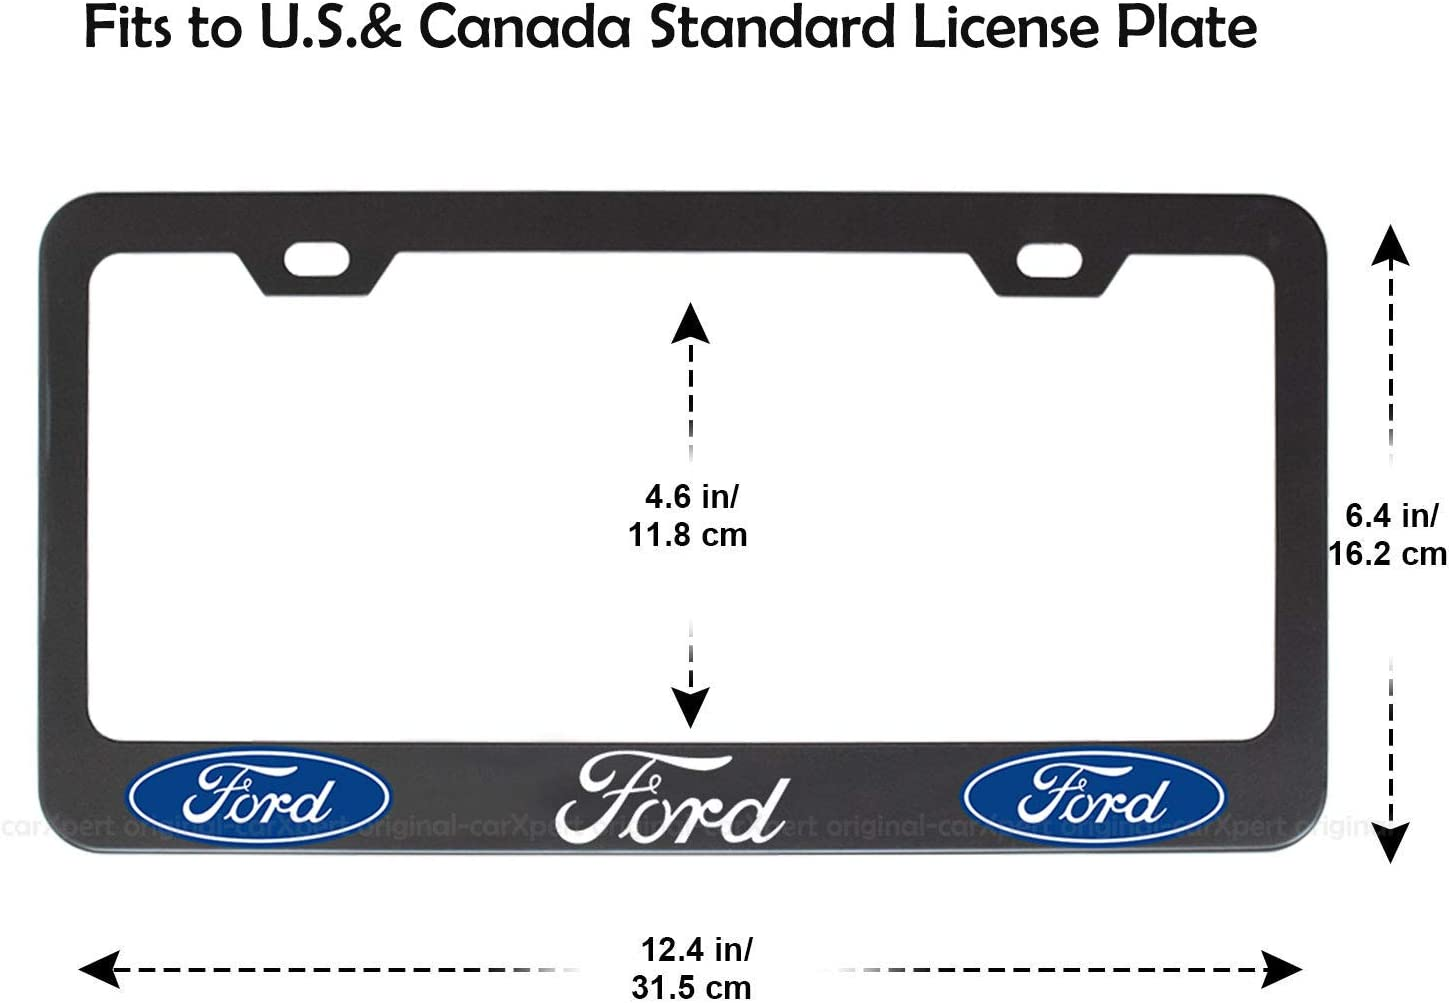 fit A c u r a-Black Upscale Black License Plate Frame for Front and Rear License Plate Carfun 2pcs for License Plate Frame,Black Matte Aluminum License Plate with Screw Caps